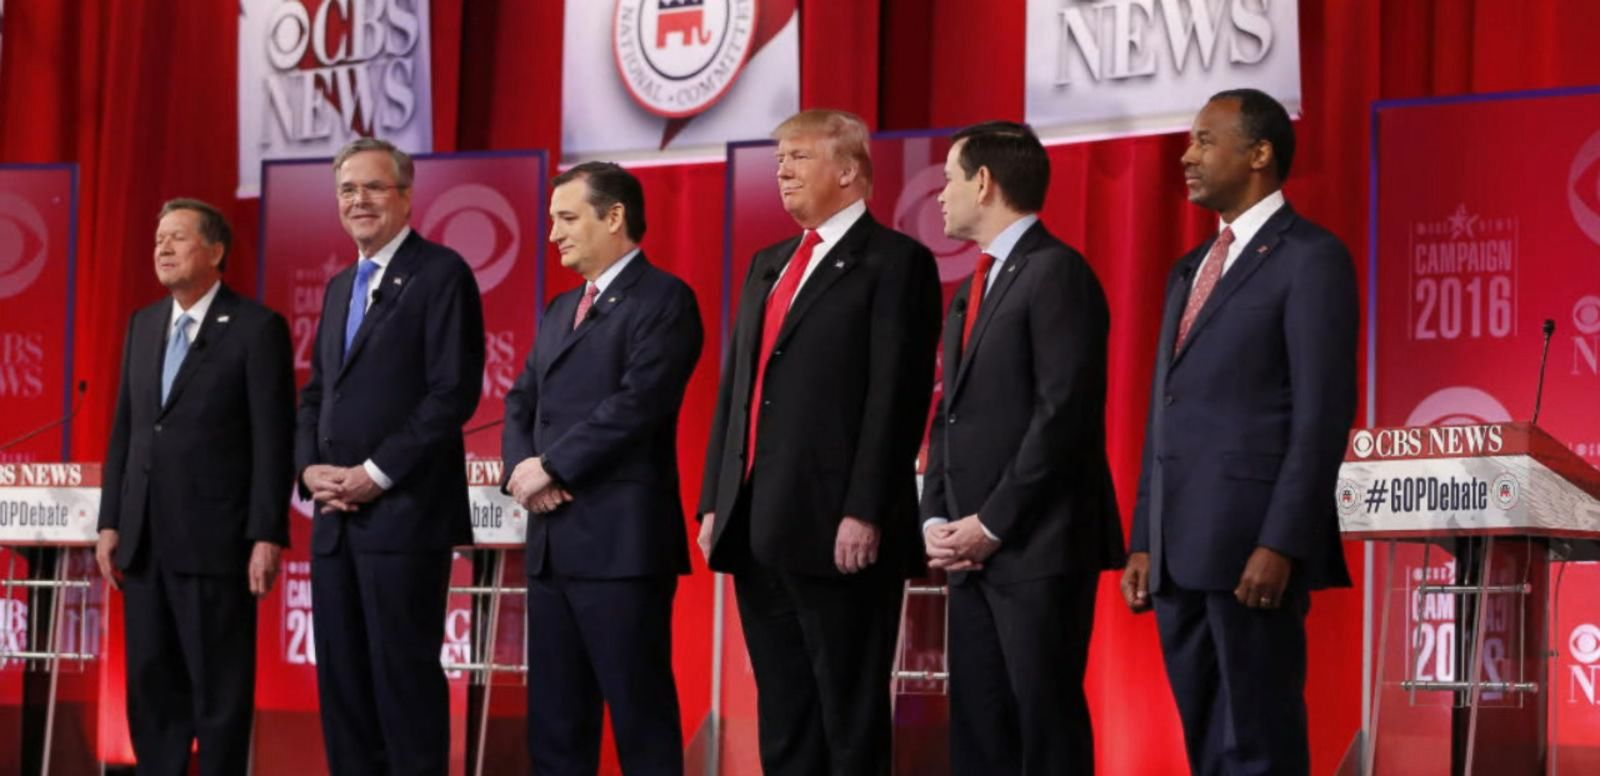 VIDEO: GOP Presidential Candidates Spar in South Carolina